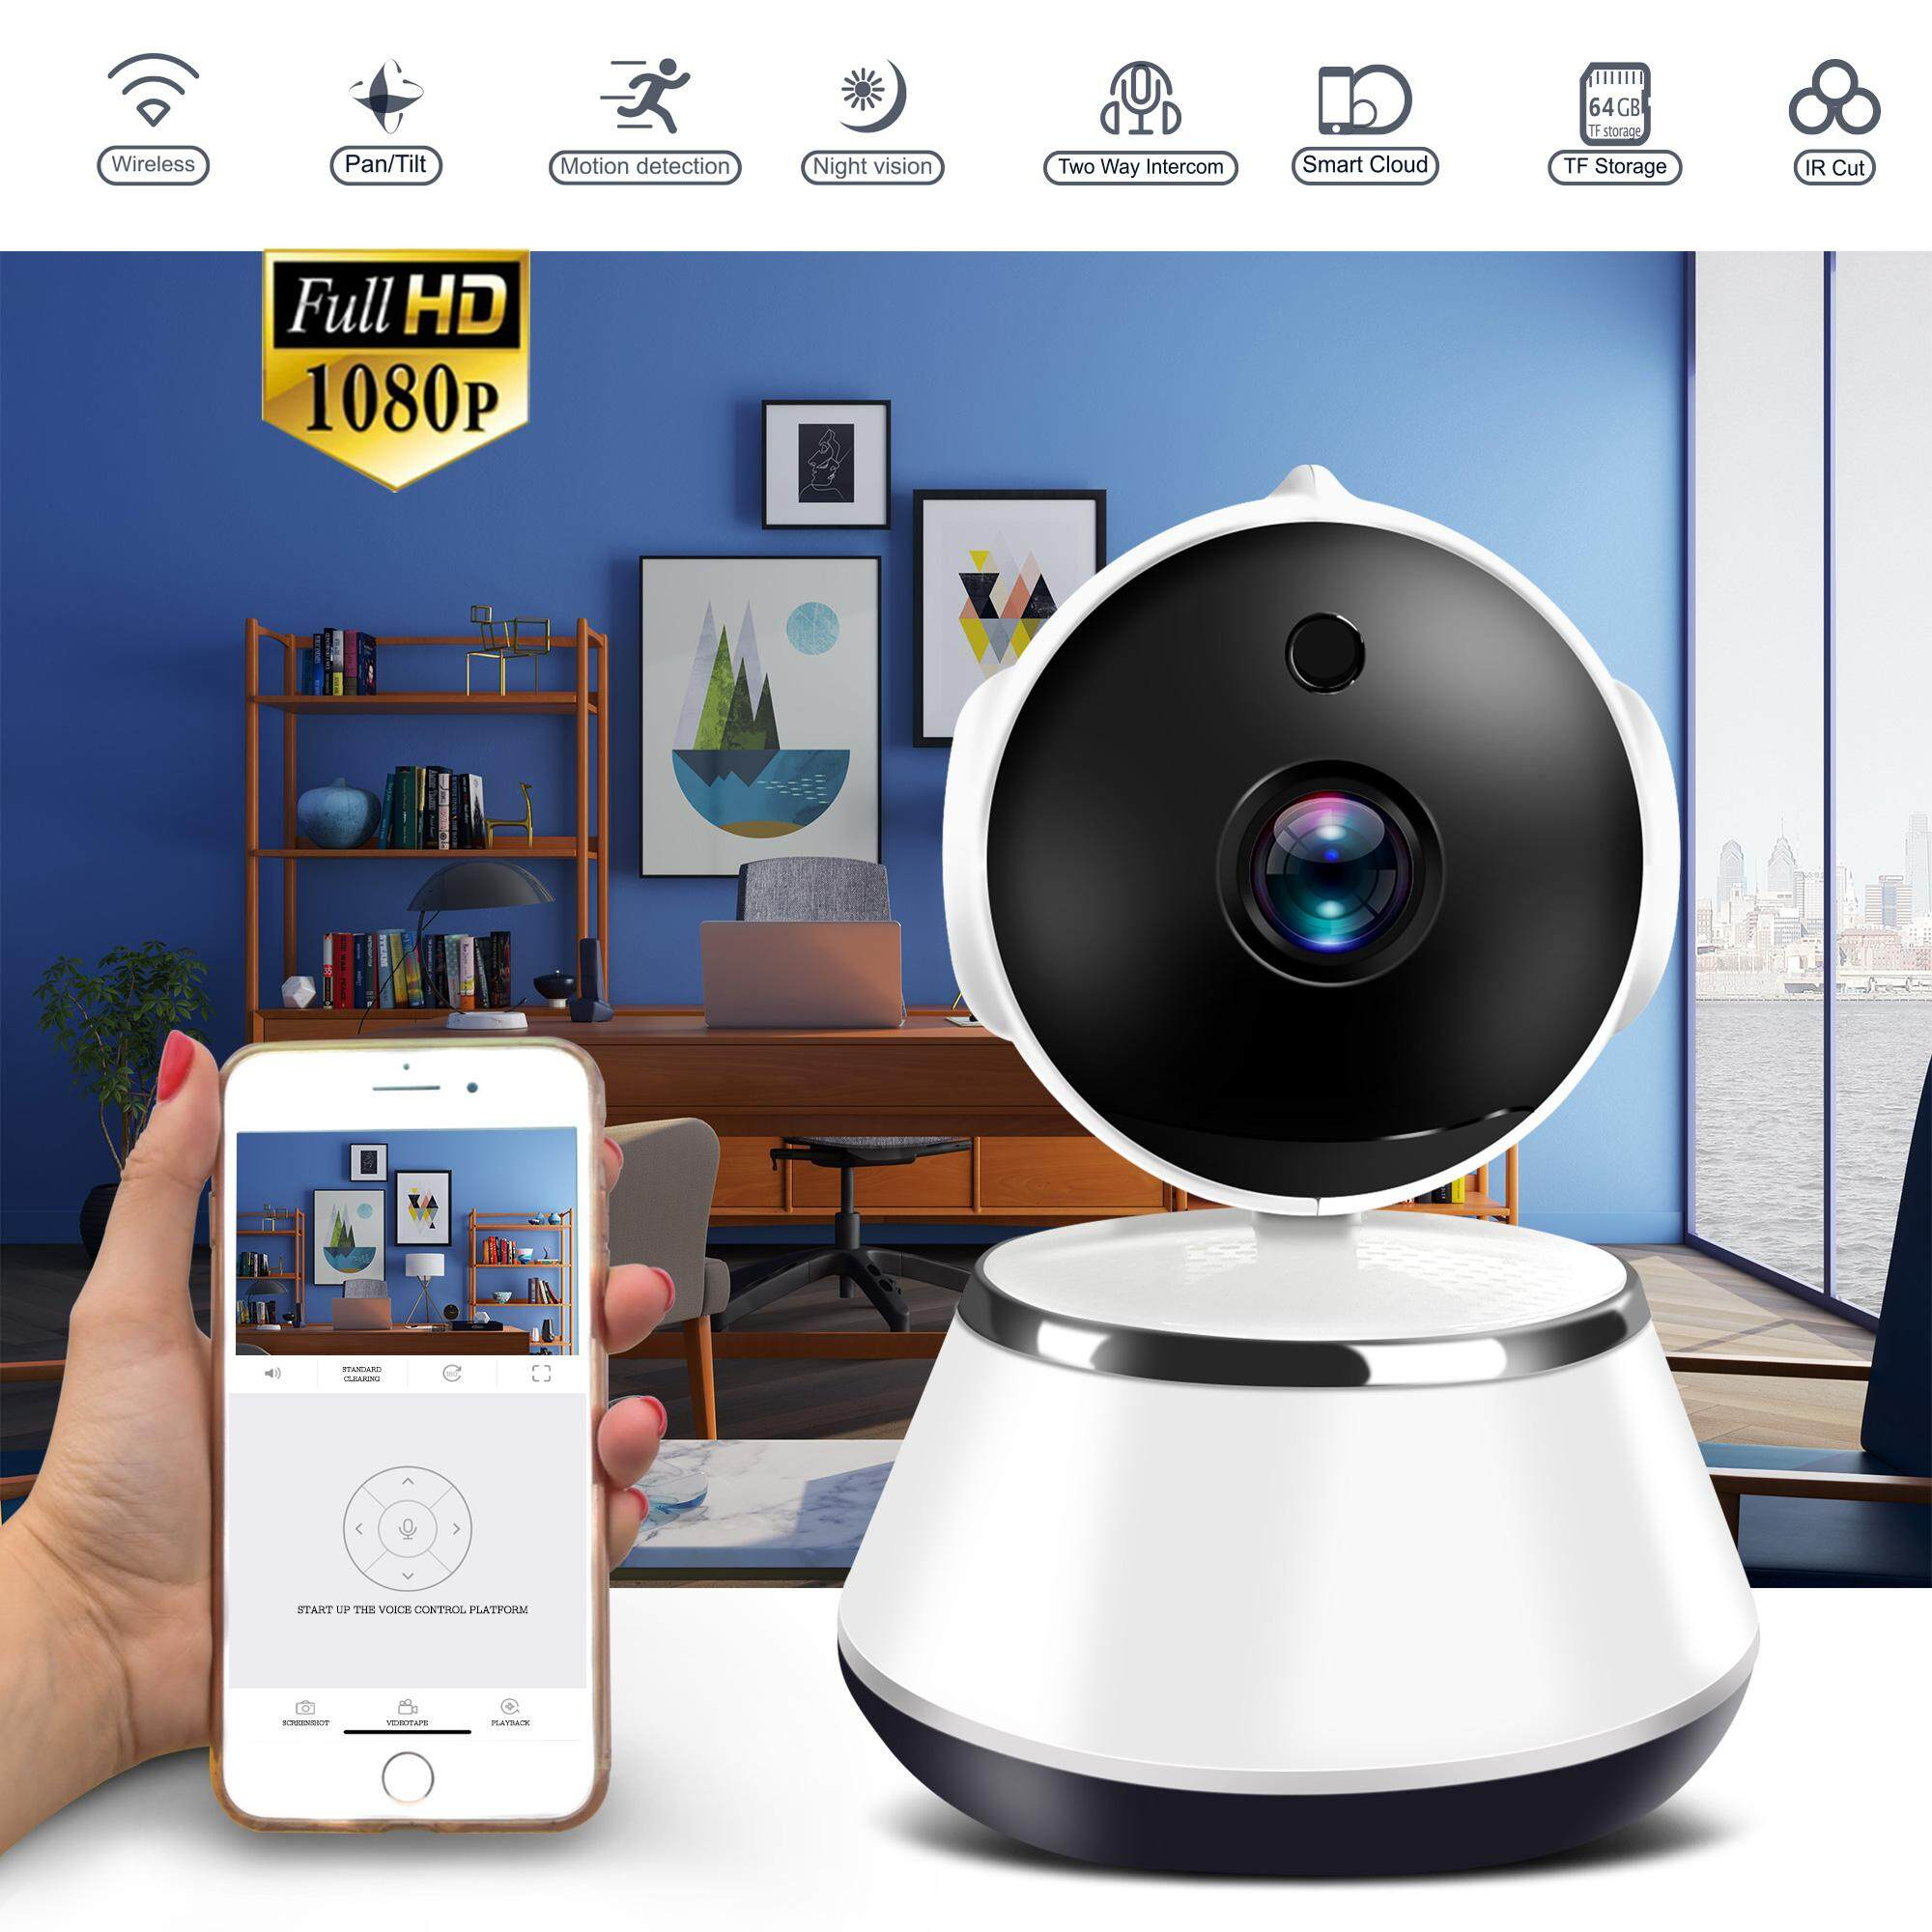 1080p Ip Cam Hd Wifi Ip Security Camera Wireless Cctv Home Network Video Surveillance Night Vision Smart Indoor Baby Monitor By South Ocean.